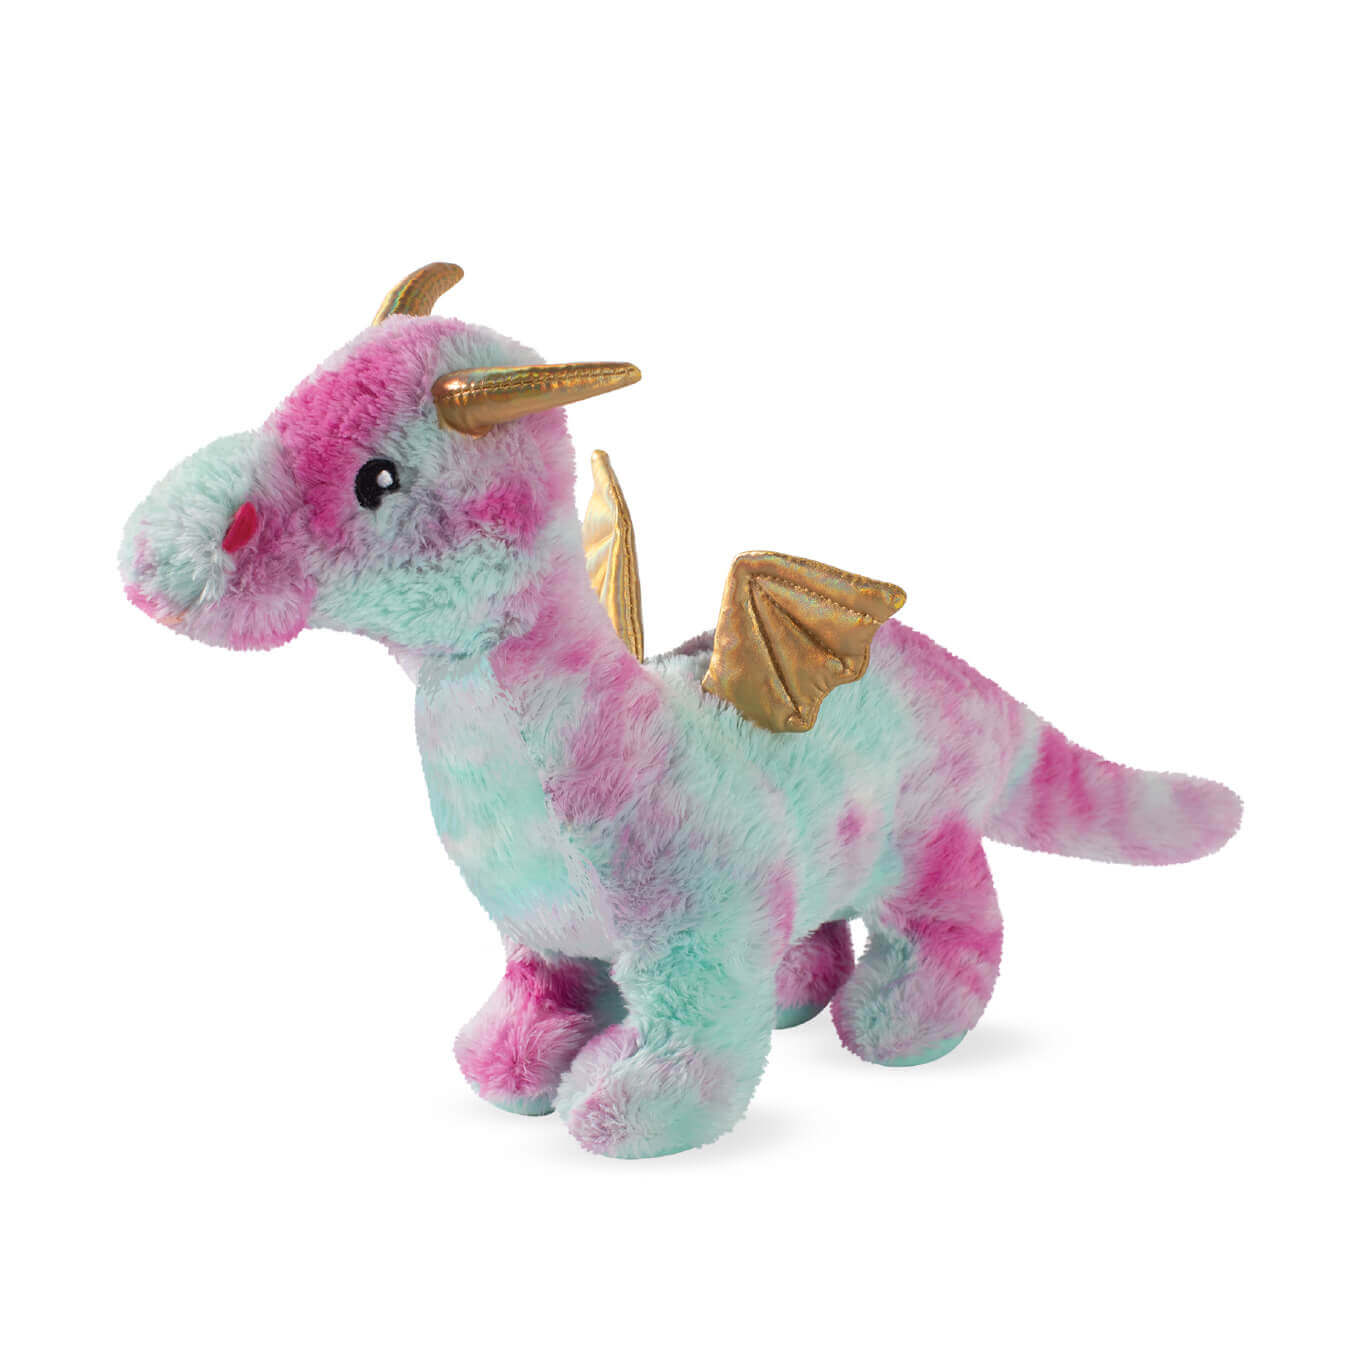 Fringe Studio Amethyst The Magenta Dragon - Vanillapup Online Pet Shop